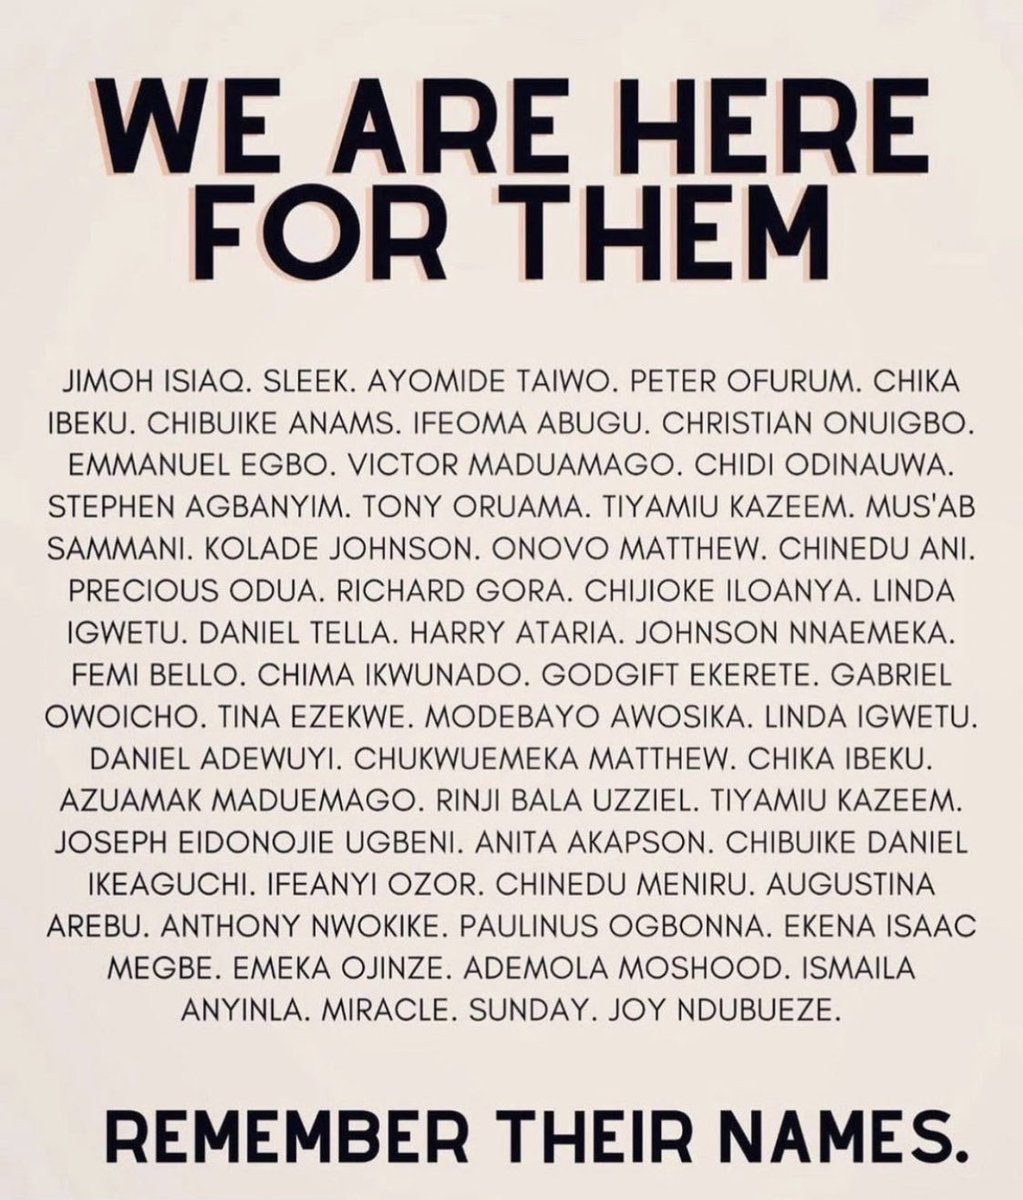 Eternal rest grant unto them, O Lord, and let perpetual light shine upon them. May the souls of the faithful departed, through the mercy of God, rest in peace Amen. 🕯🕯🕯🕊🕊🕊🕊 #EndSARS #EndSARS #EndPoliceBrutality #EndSWAT https://t.co/sAWWmsfu6G